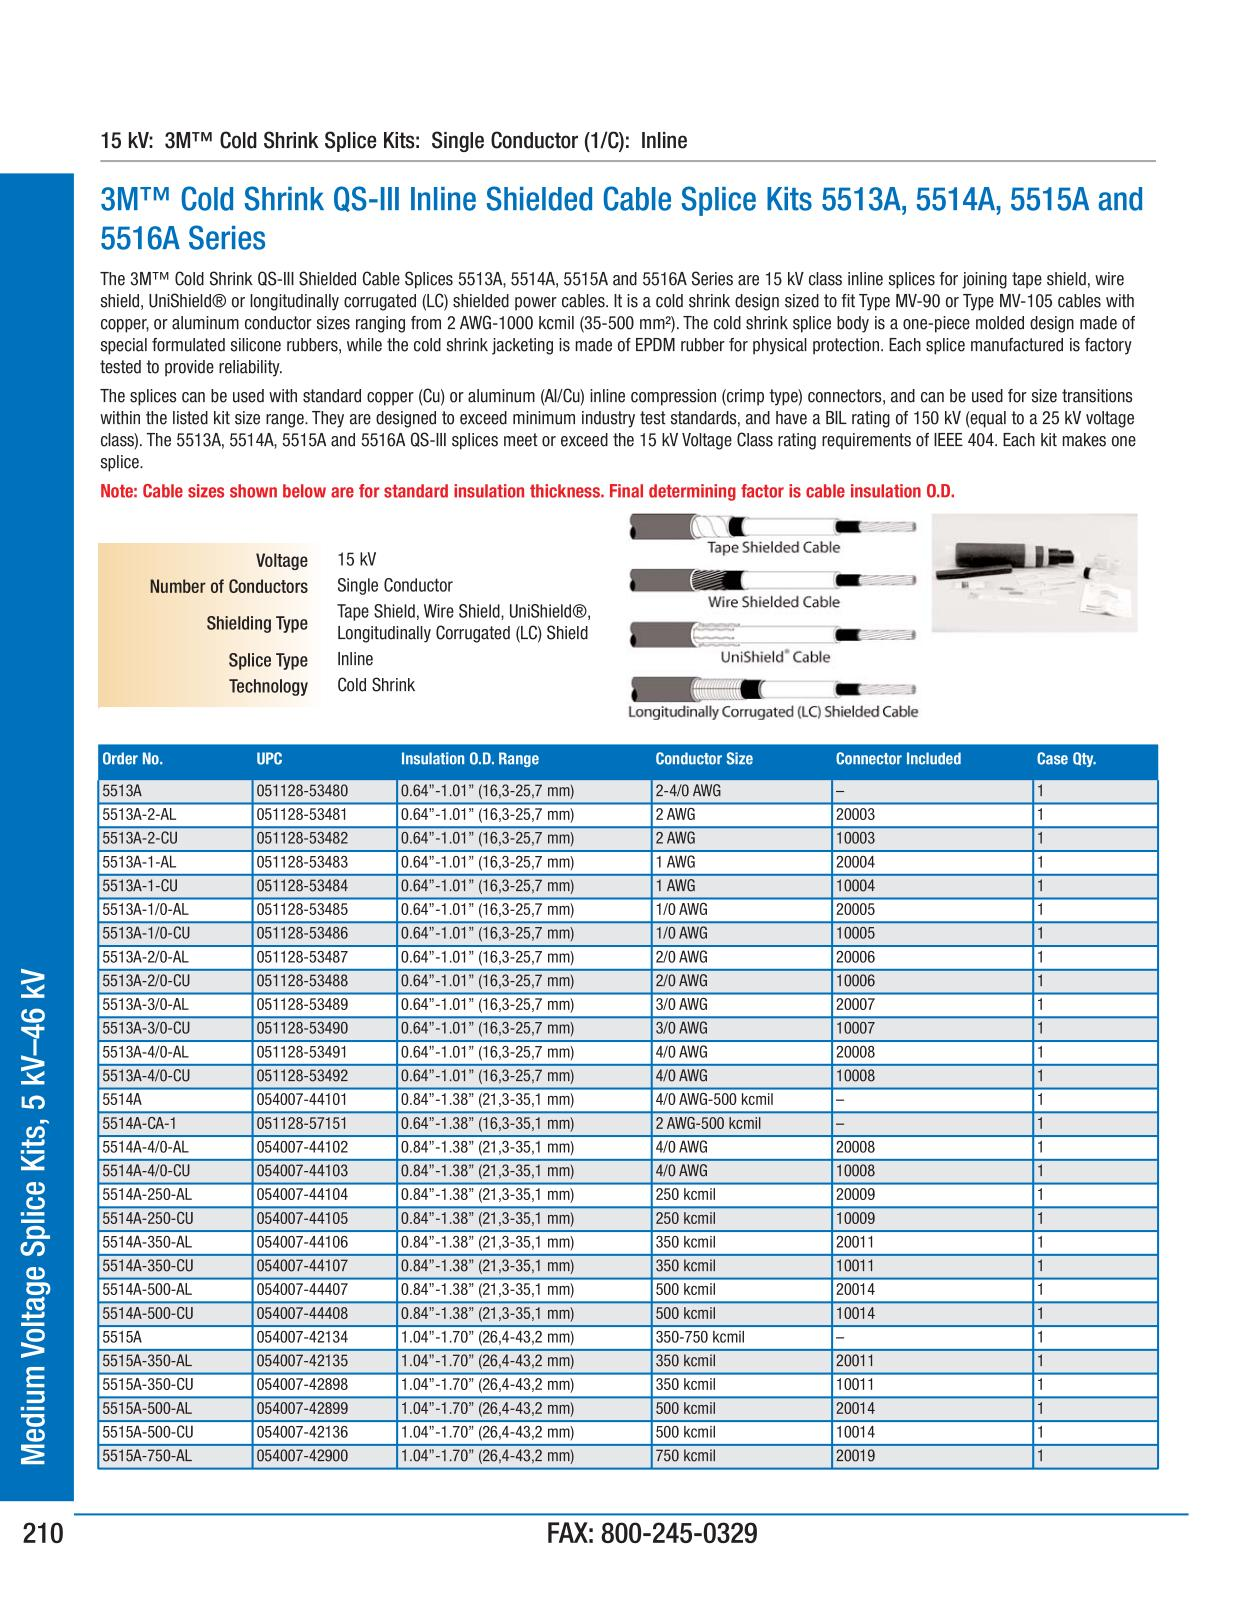 3M Electrical Products Page 210 - Medium Voltage Splice Kits, 5 kV ...